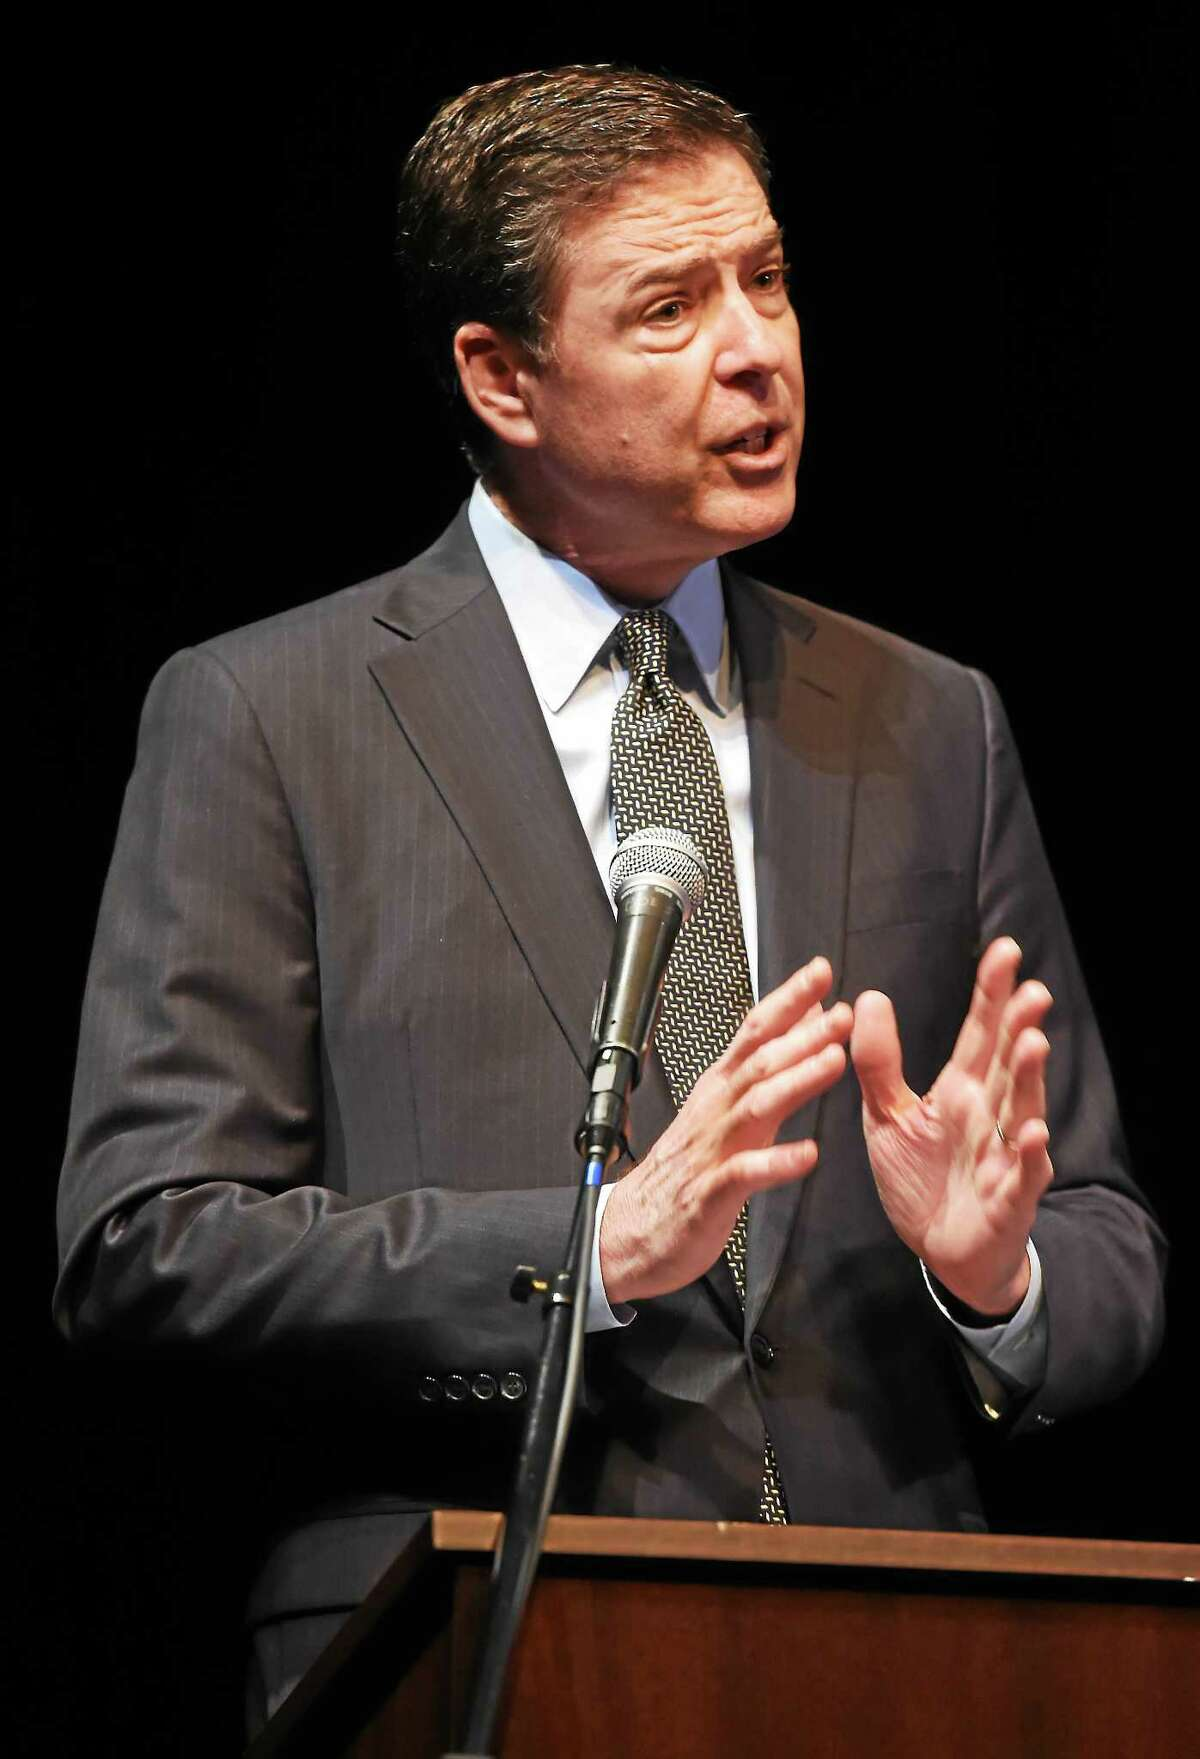 FBI Director James Comey gives the closing address during the Building Bridges Conference at Cooperative Arts and Humanities High School in New Haven Monday.